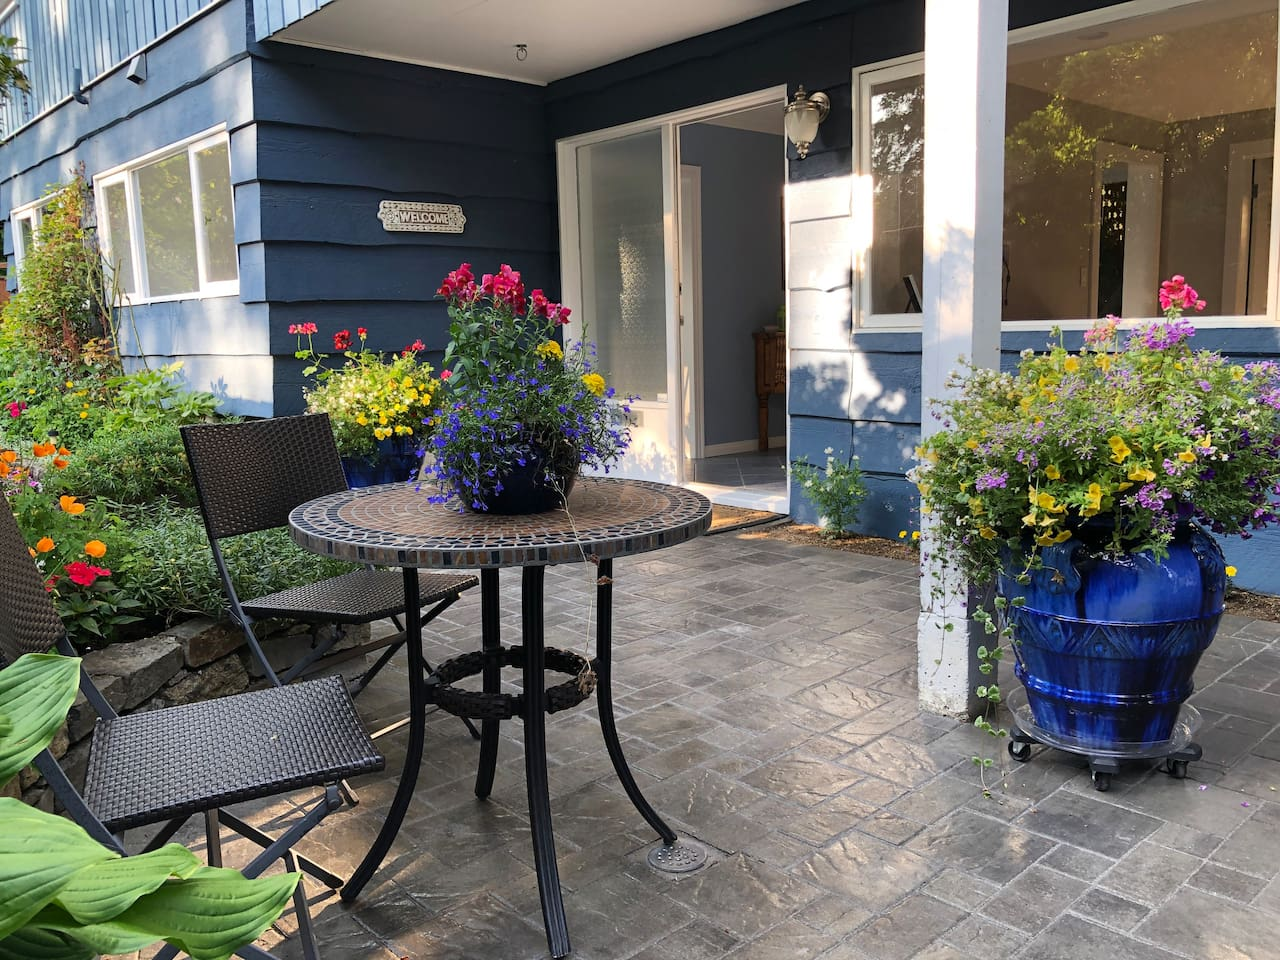 We welcome you!  Your private garden patio, is available May through September weather permitting.